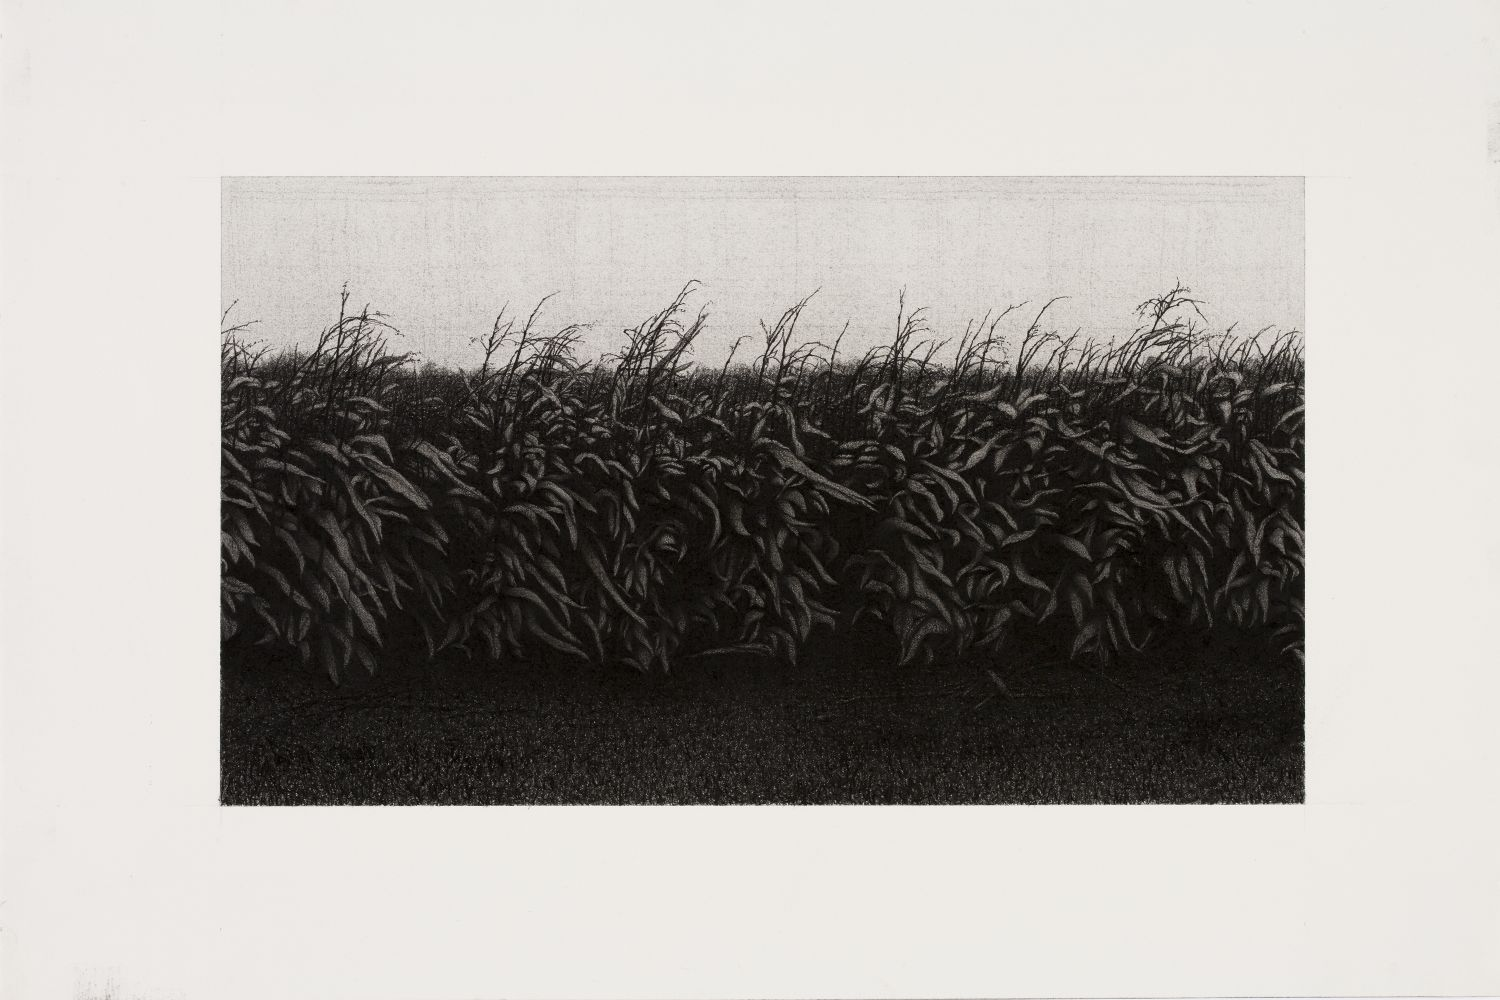 Anthony Mitri, Corn, Bundysburg, 2013, charcoal on paper, 9 1/4 x 16 inches